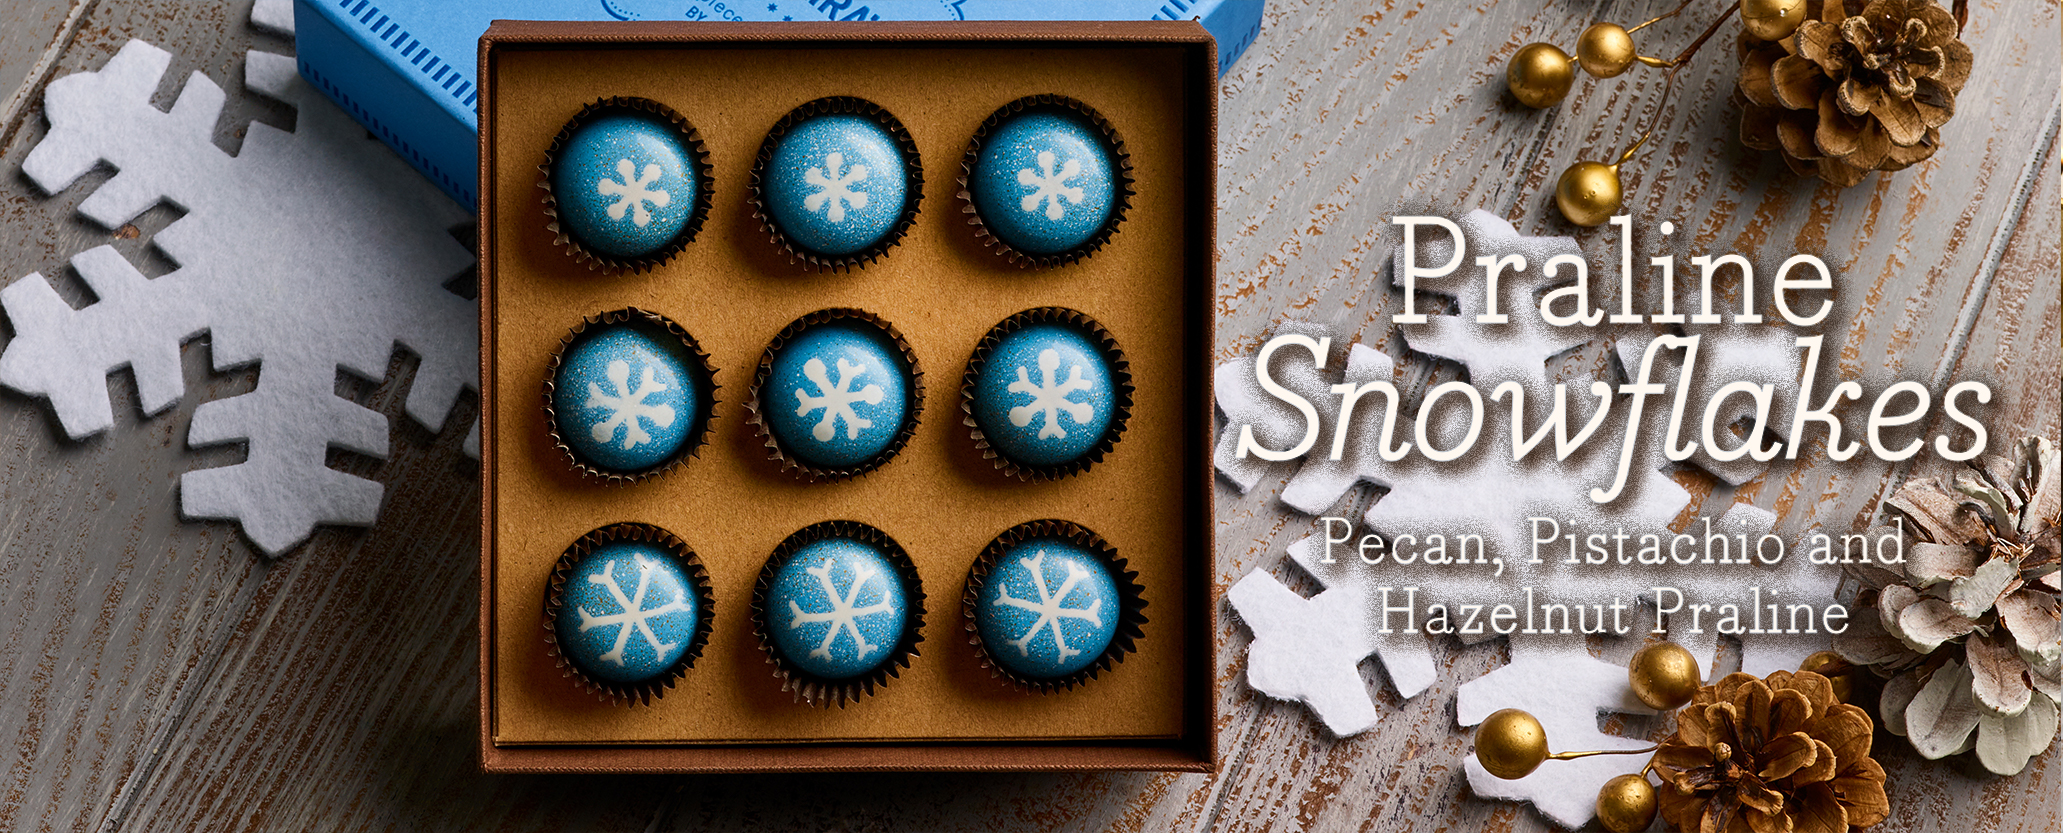 Praline Snowflakes and Winter Gifts